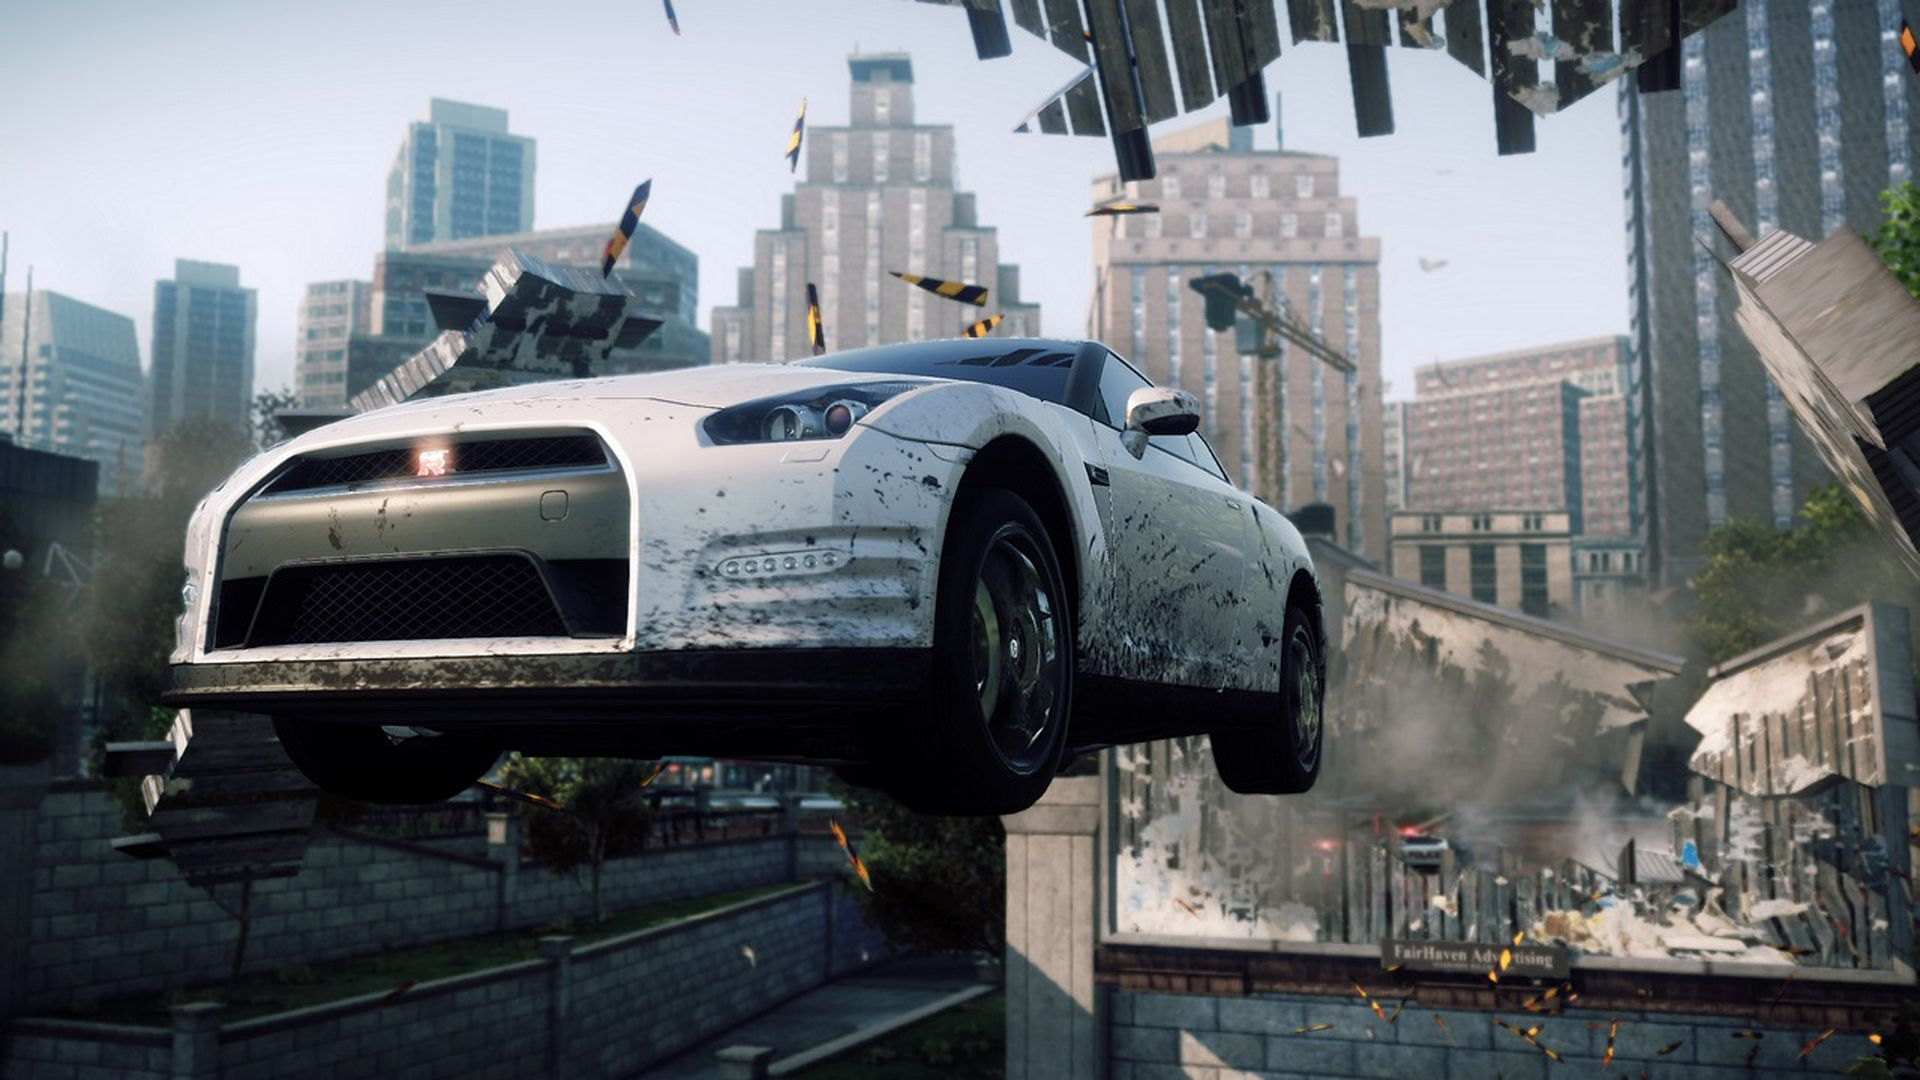 10 Most Popular Need For Speed Wallpaper Full Hd 1080p For: Need For Speed Most Wanted Wallpapers